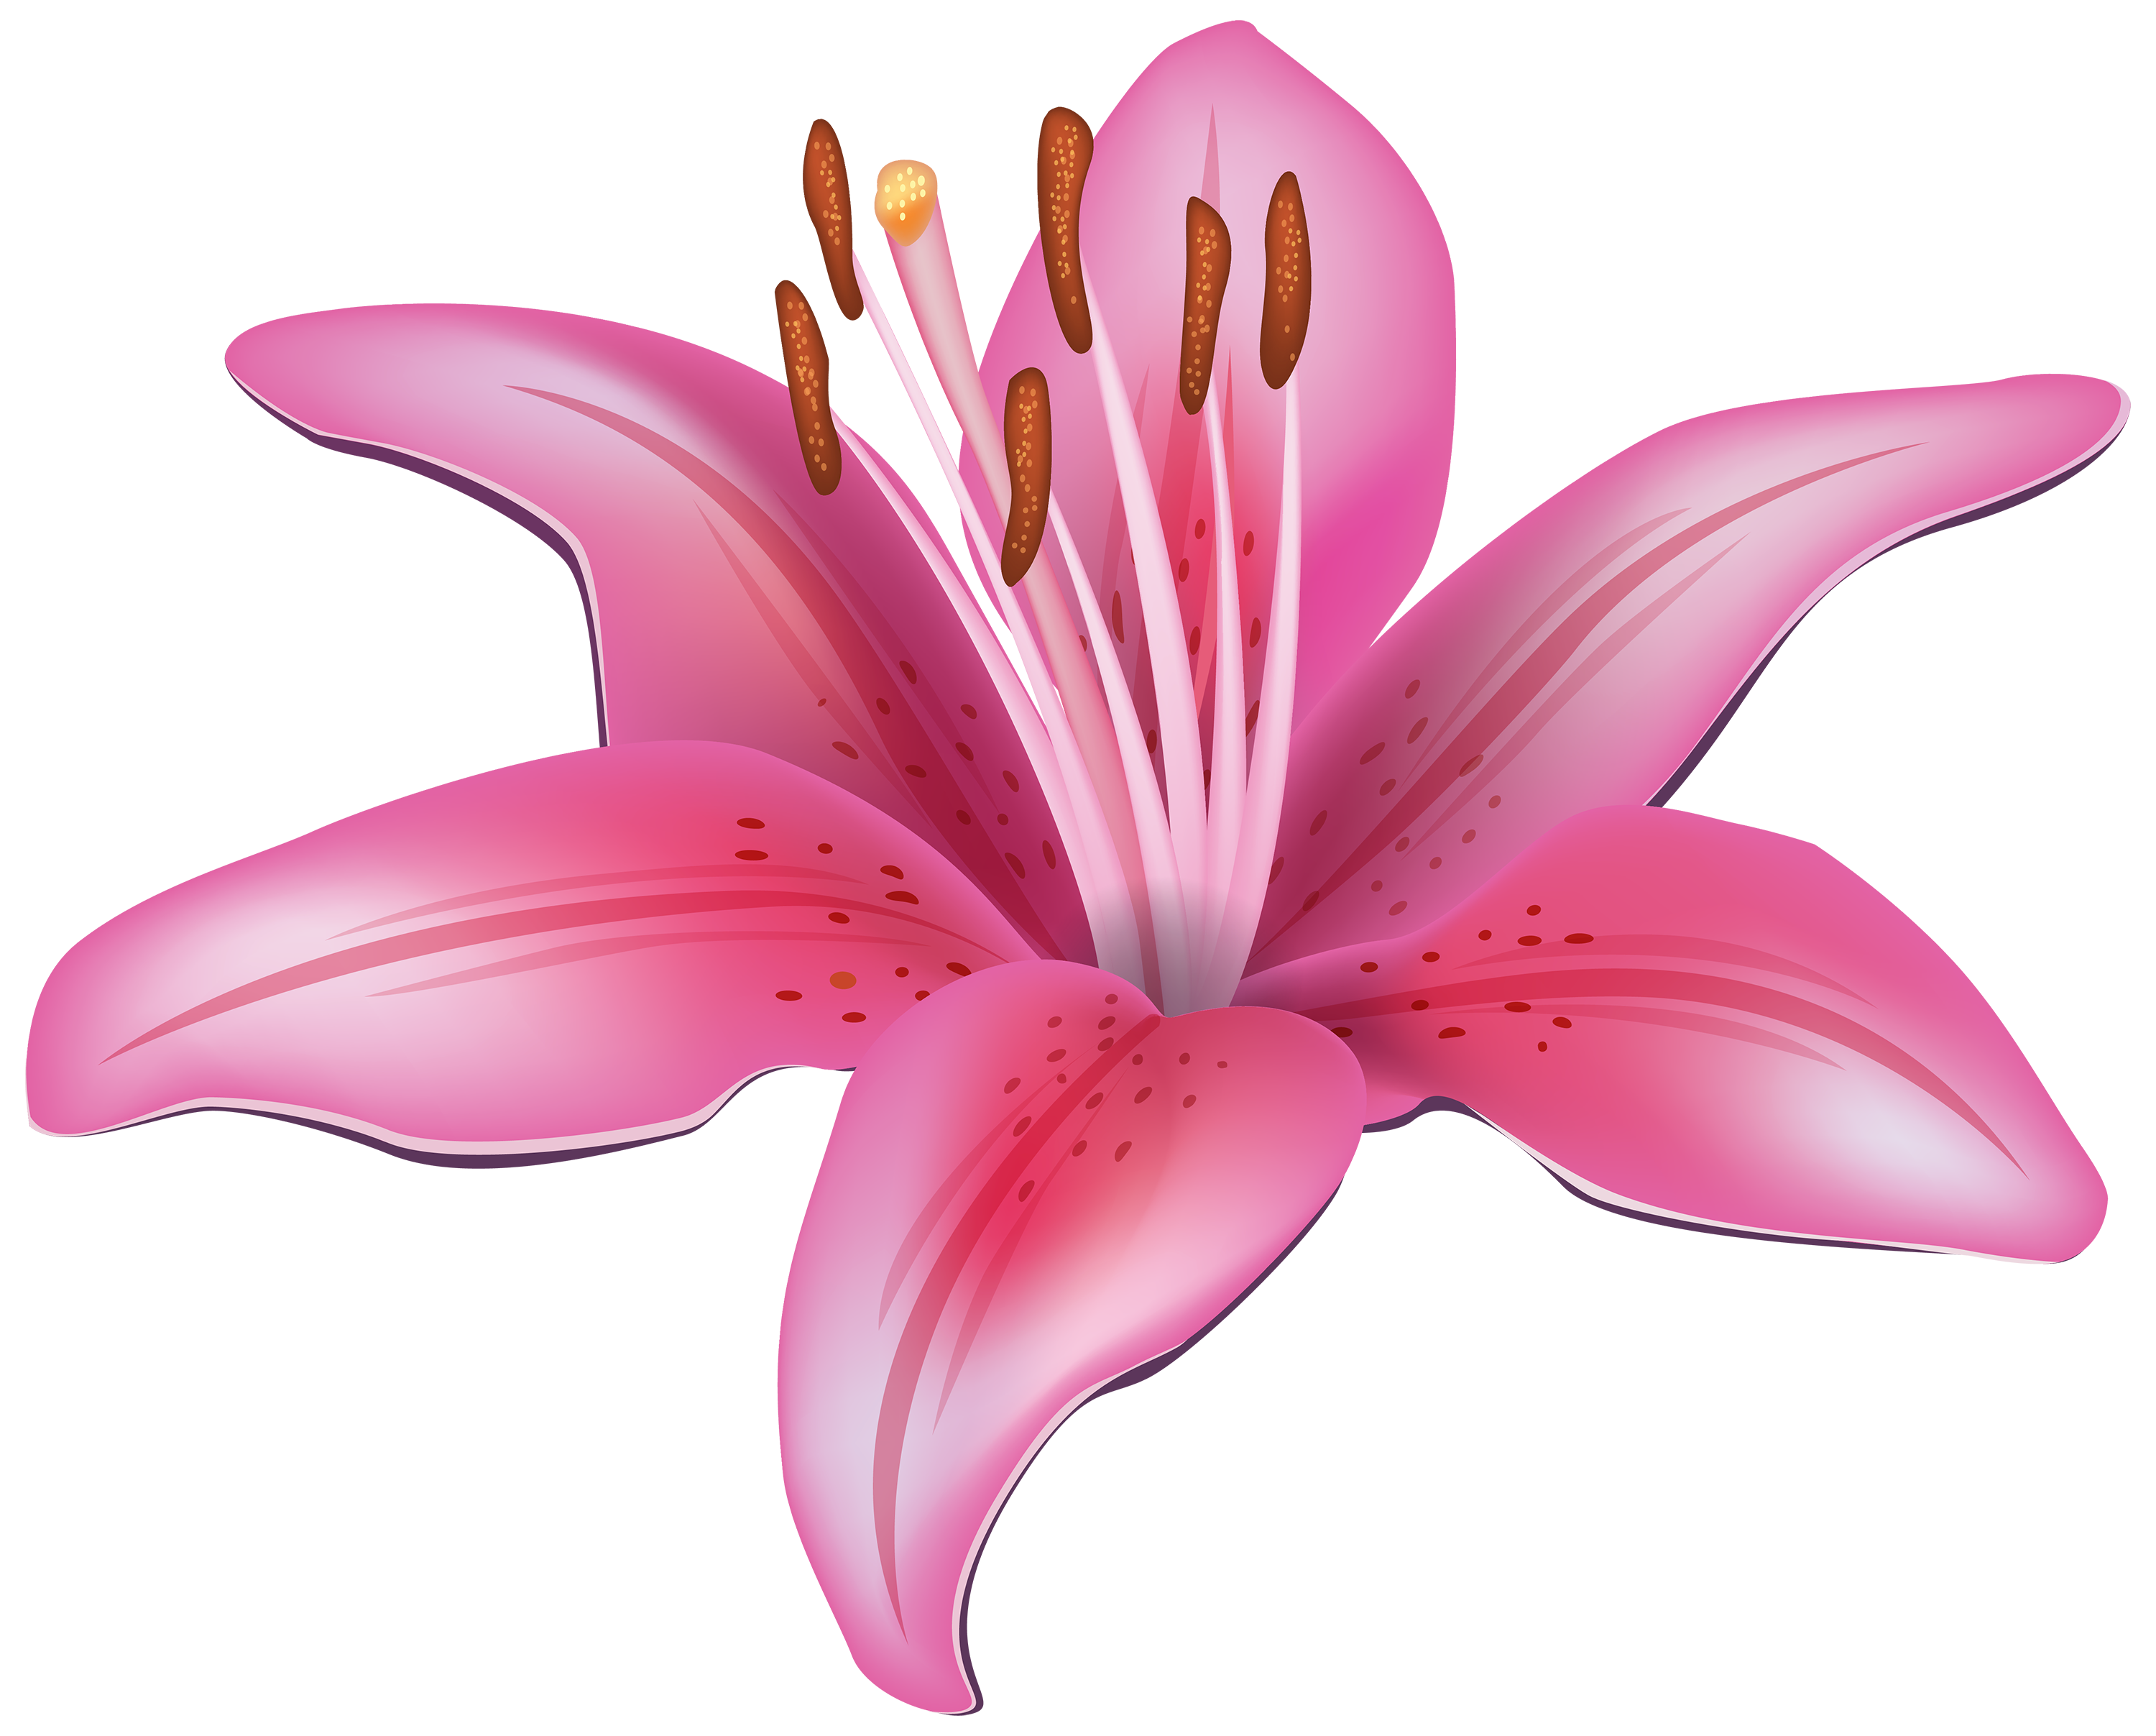 free clip art lily flowers - photo #12